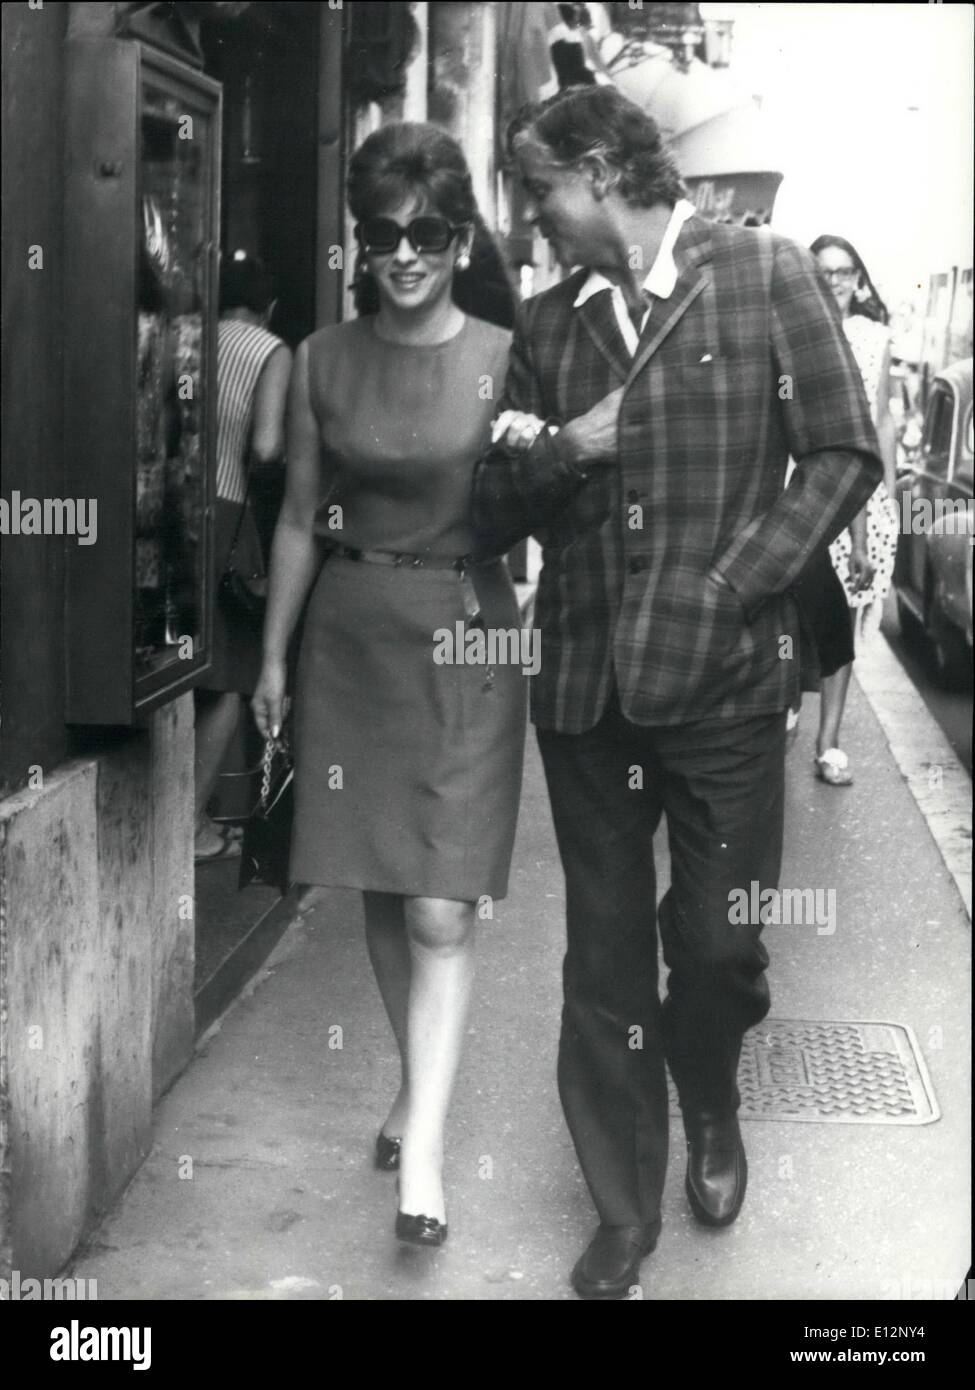 Feb. 24, 2012 - Actress Gina Lollobrigida accompanied by an unidentified friend, walking the streets for shopping. Stock Photo